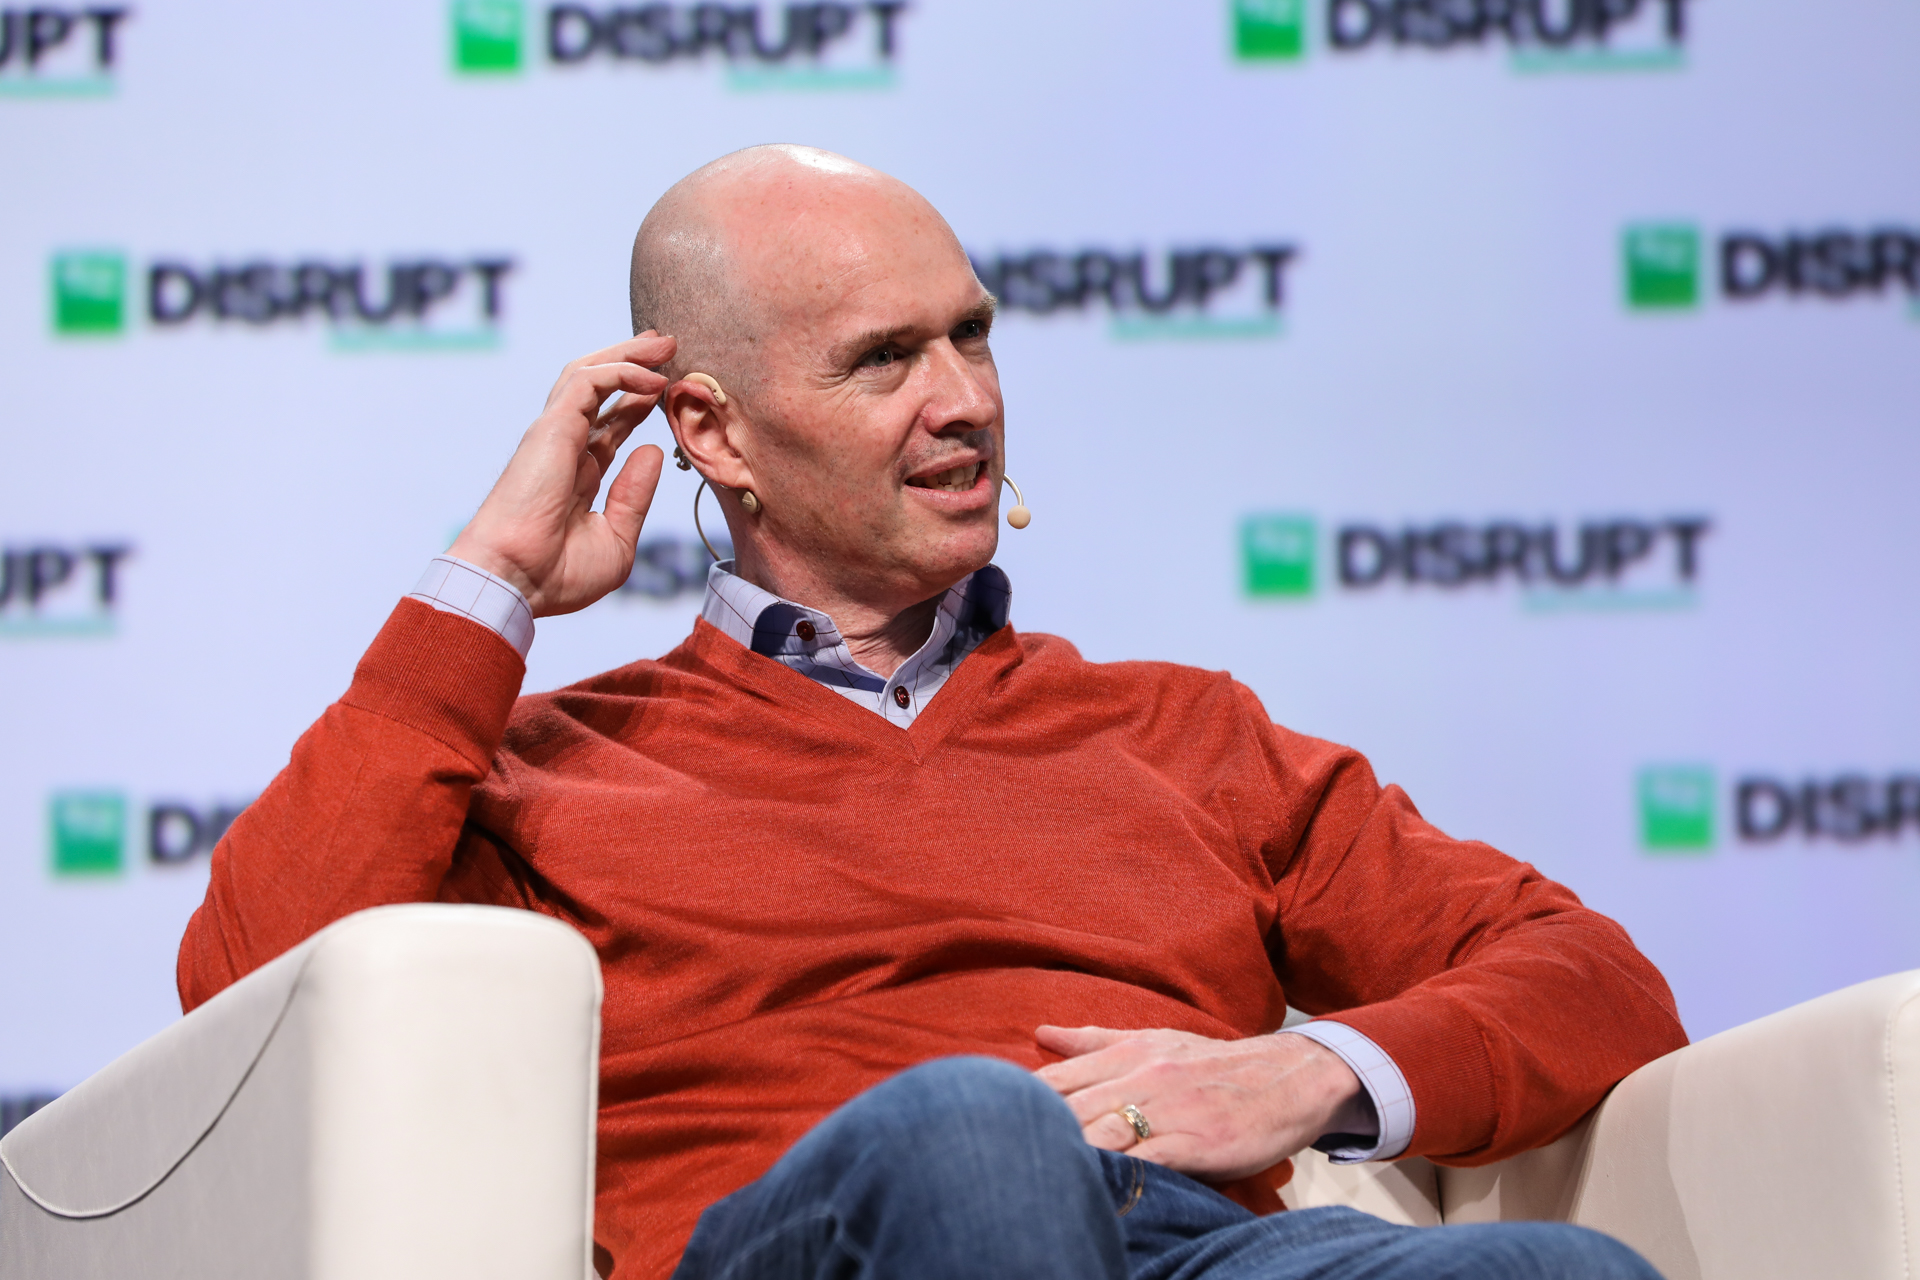 The 54-year old son of father (?) and mother(?) Ben Horowitz in 2020 photo. Ben Horowitz earned a million dollar salary - leaving the net worth at million in 2020